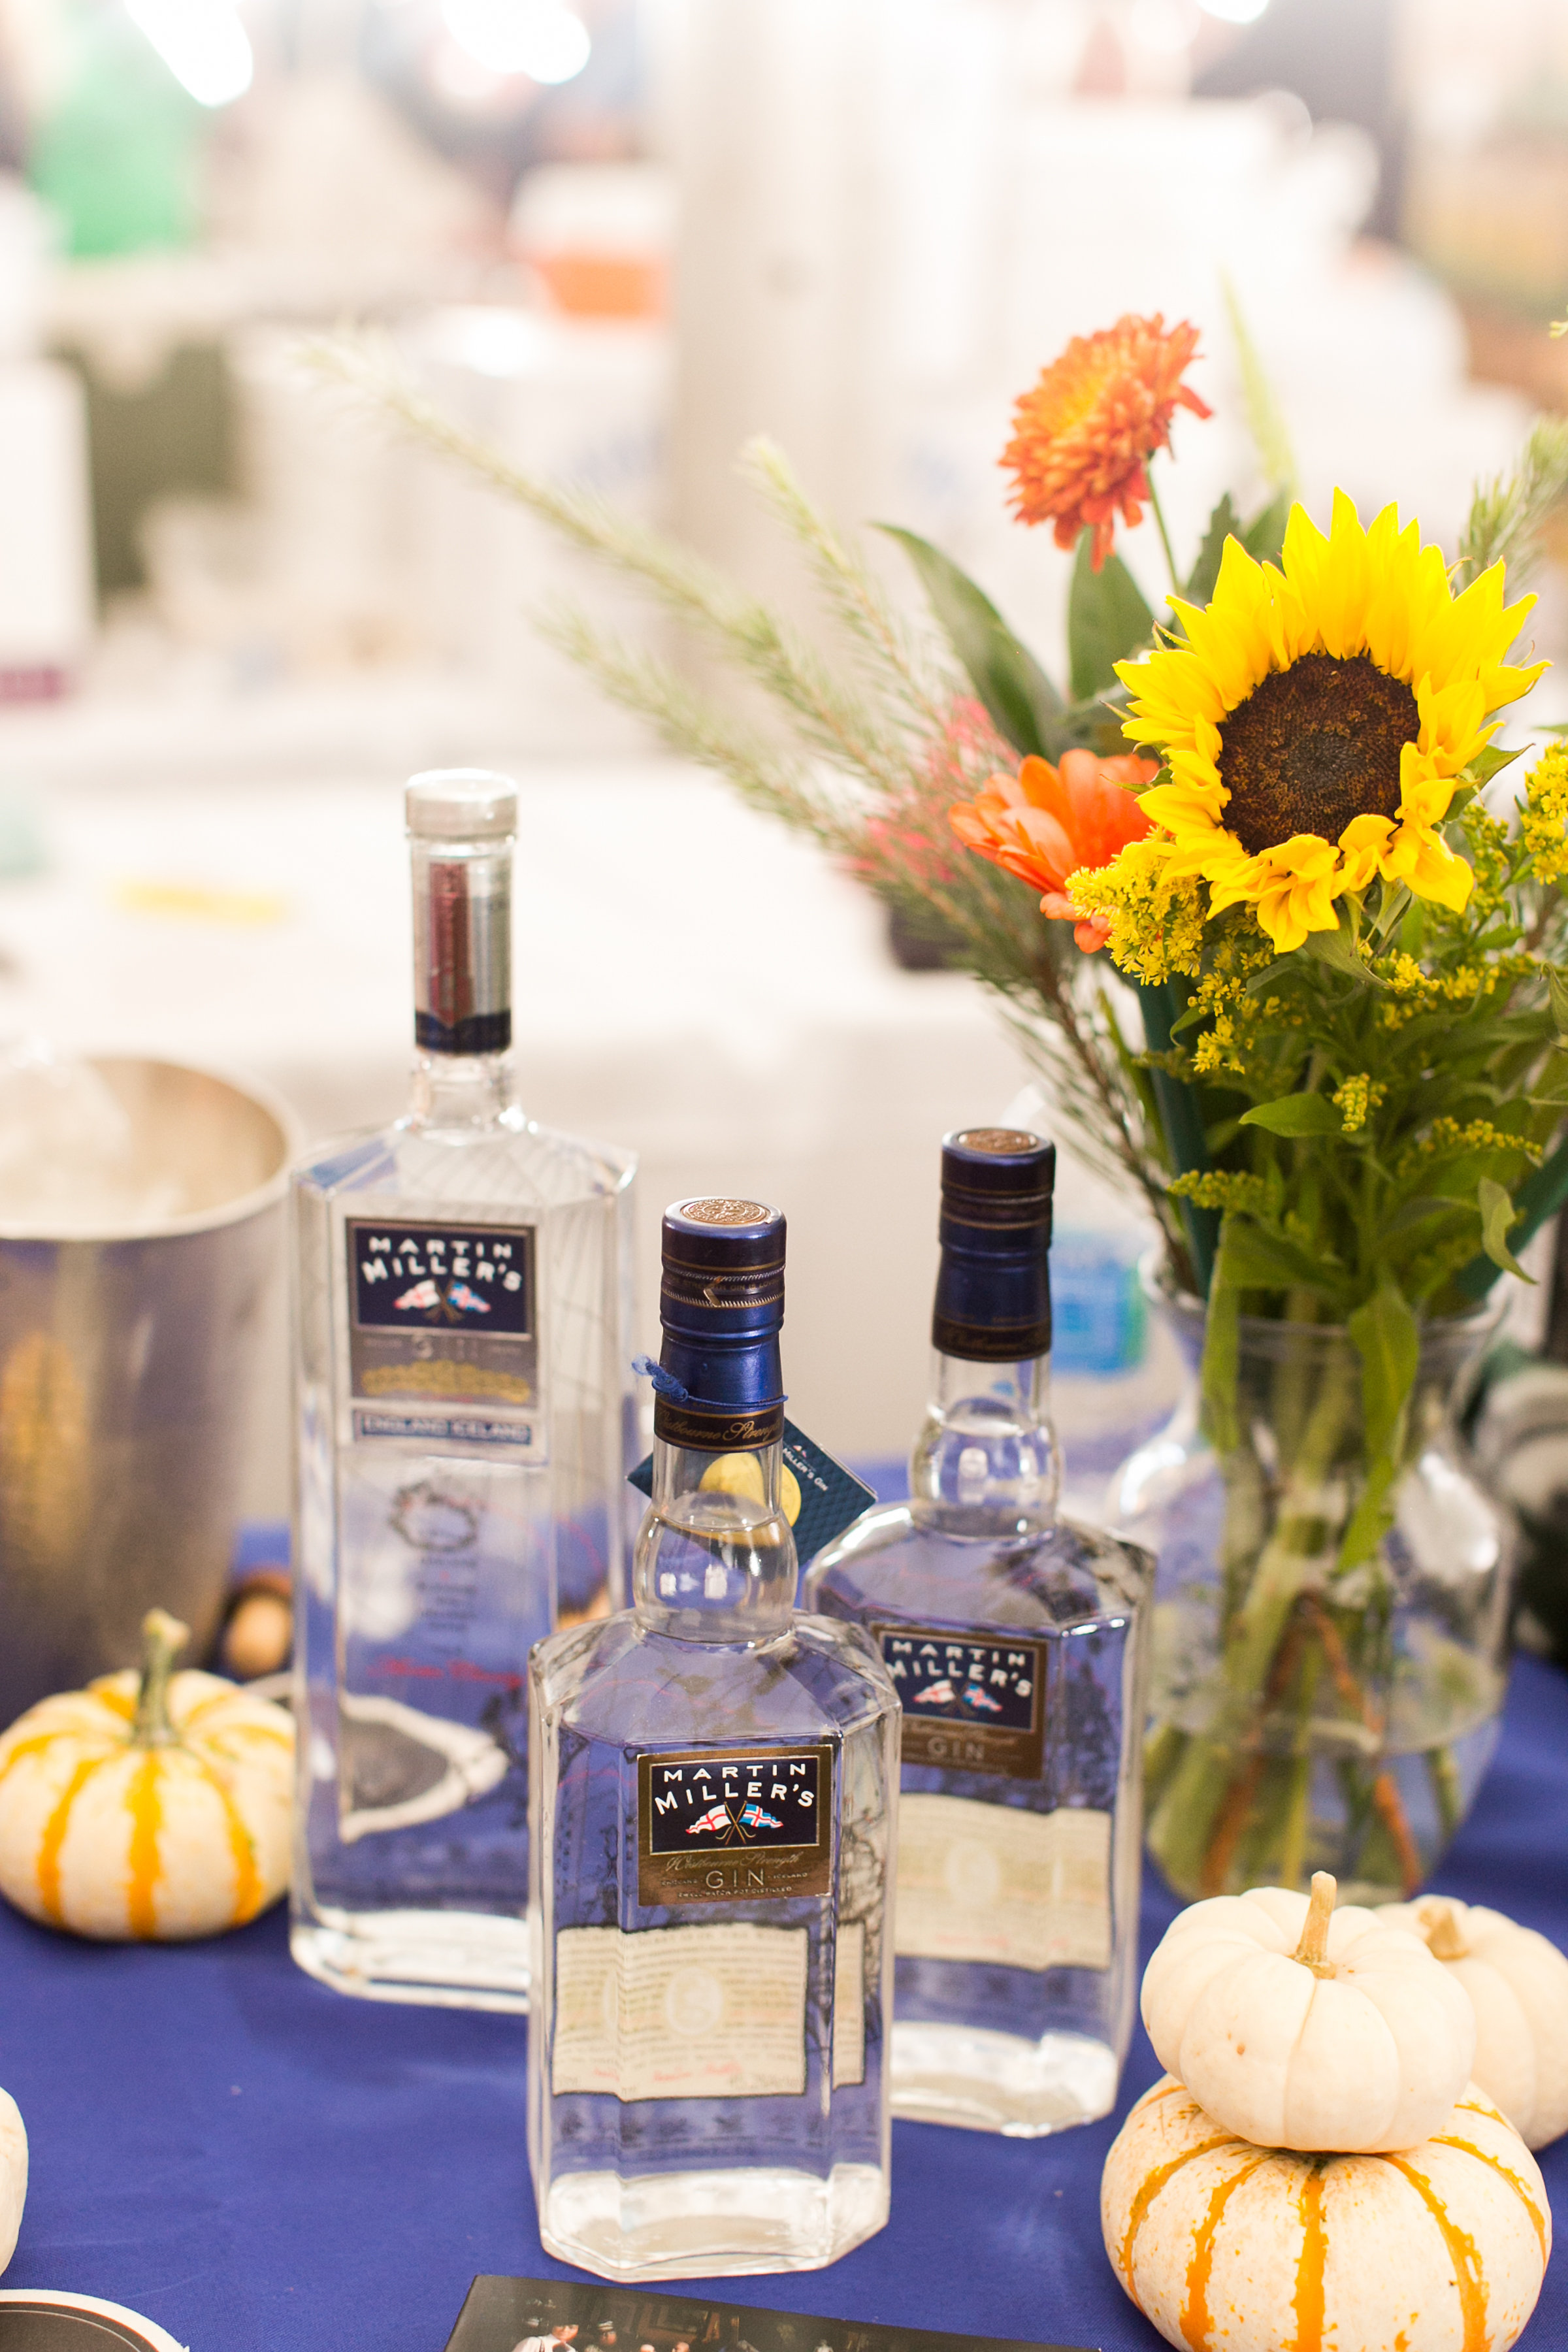 Martin Miller's Gin at the Greenwich Wine and Food Festival 2016 | CTEatsOut.com